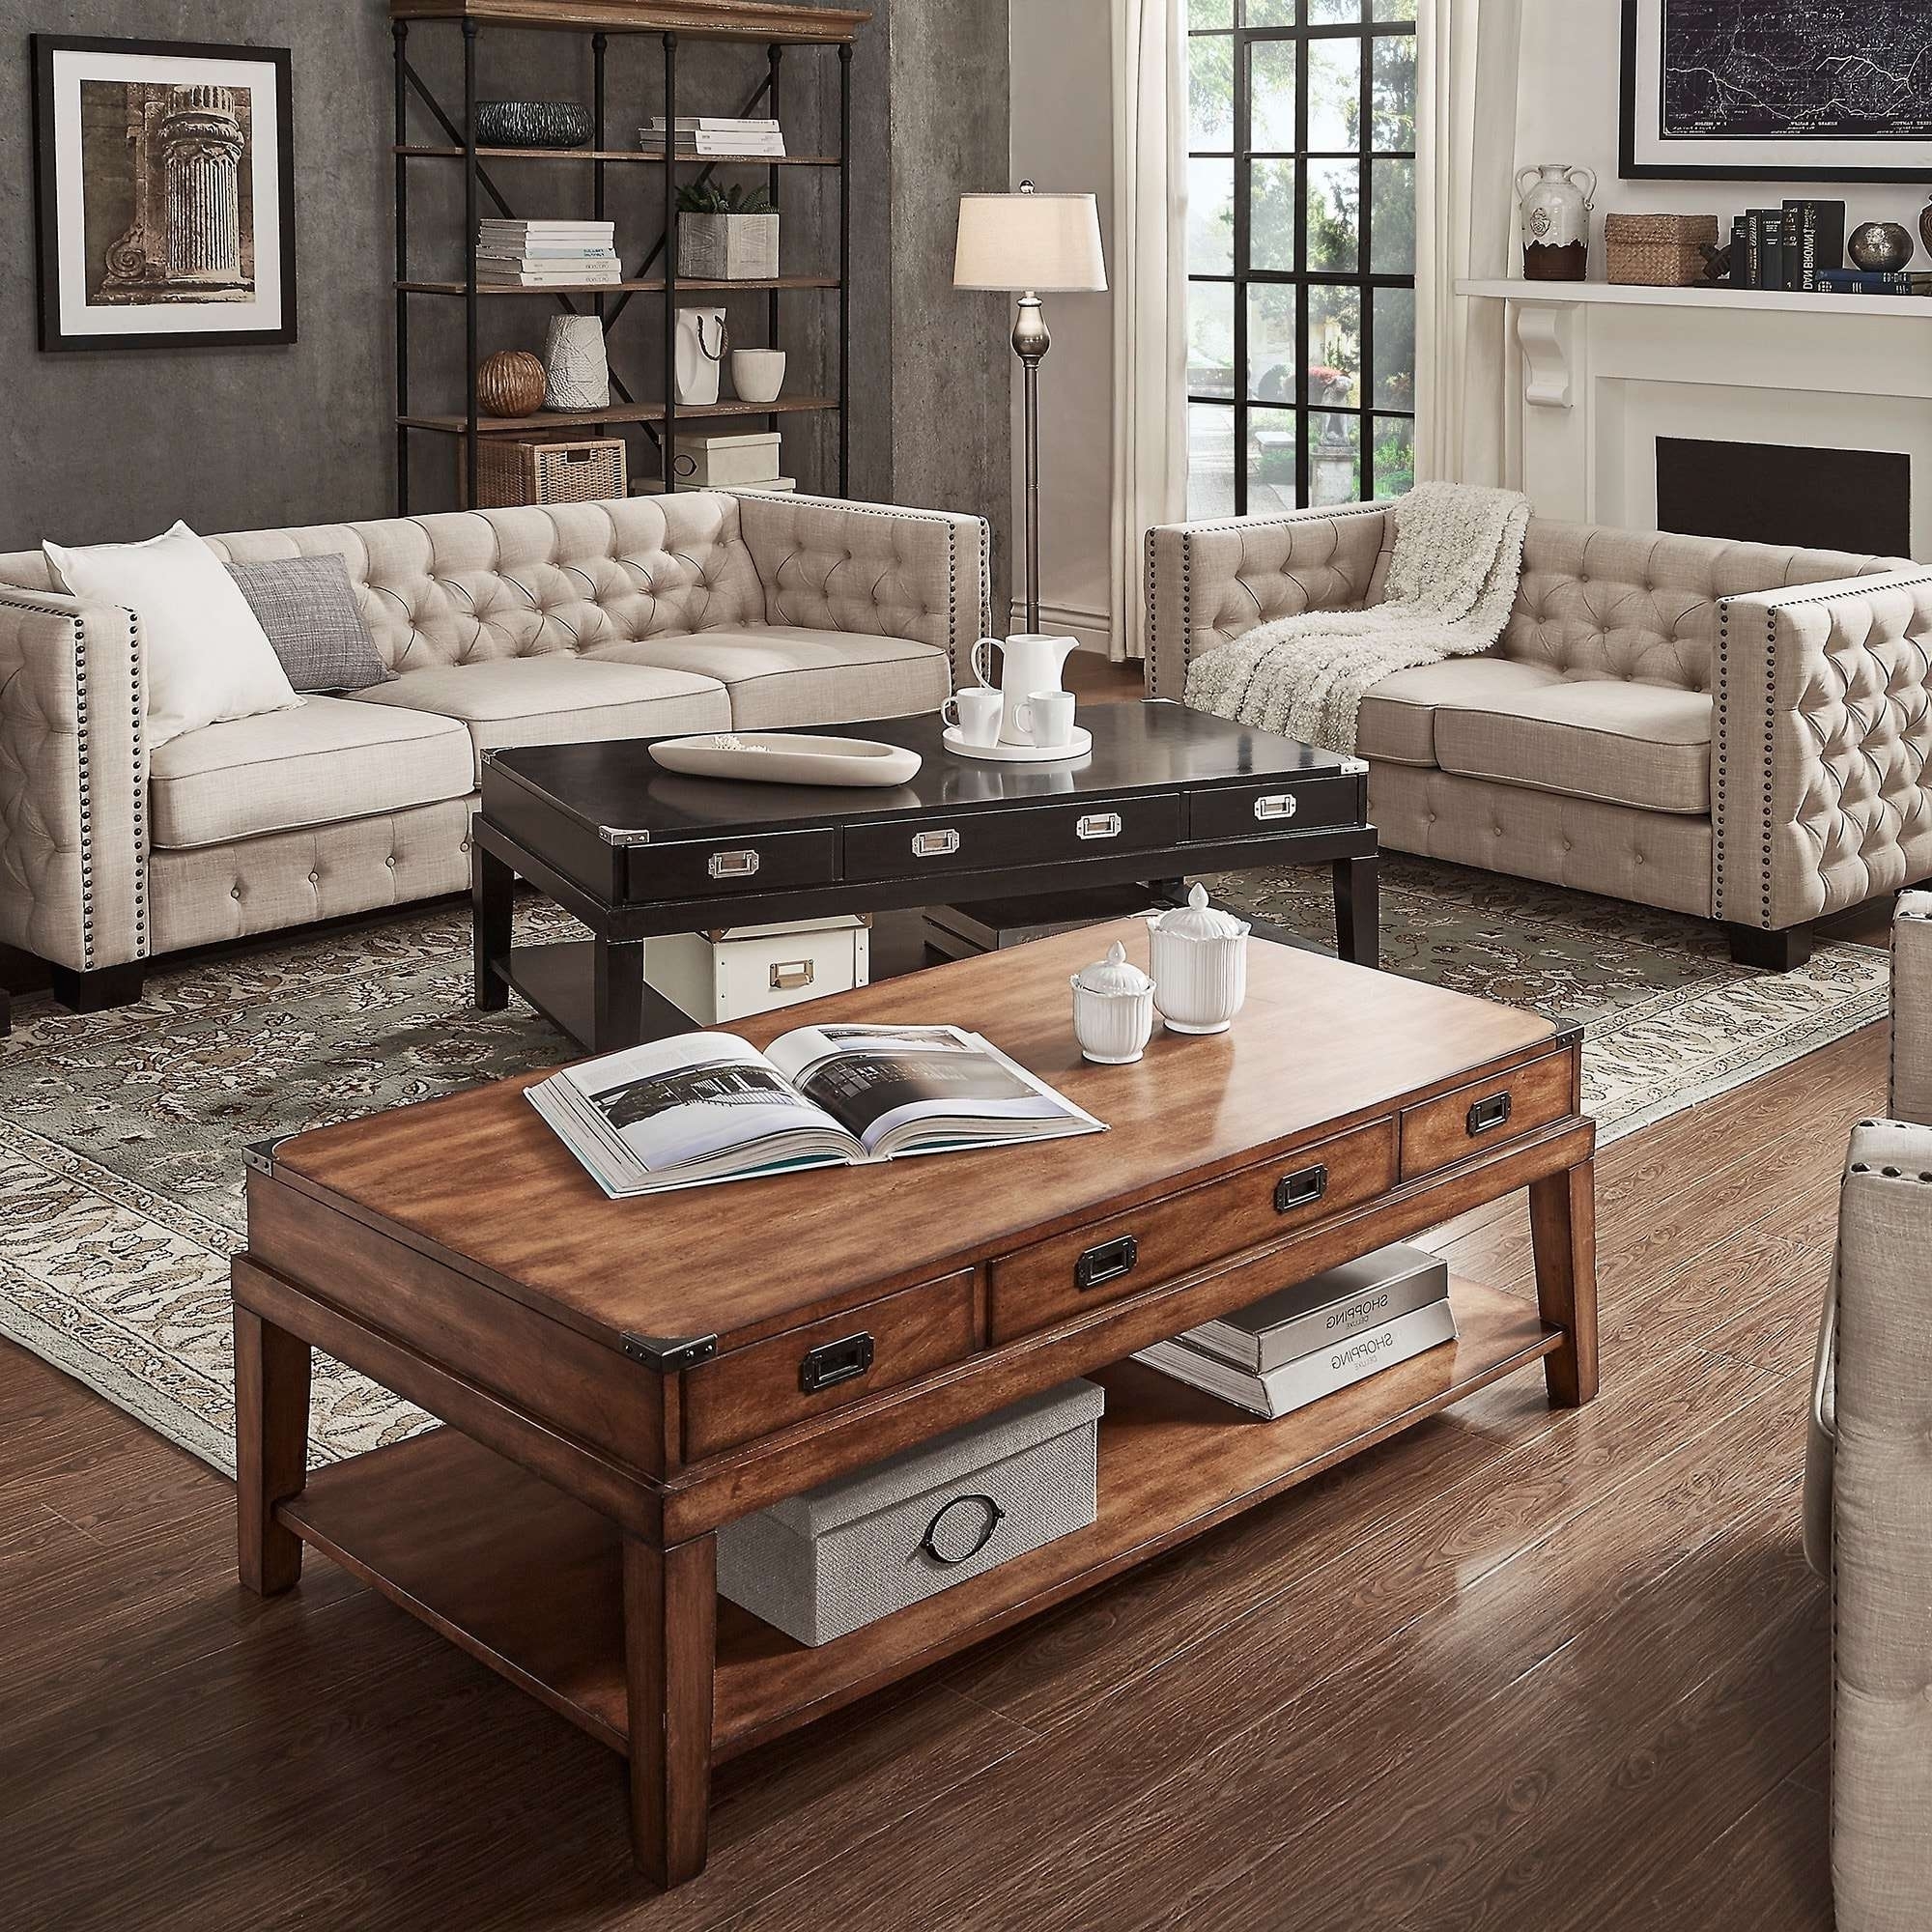 Most Recent Campaign Coffee Tables Intended For Lonny Wood Storage Accent Campaign Coffee Tableinspire Q (View 15 of 20)